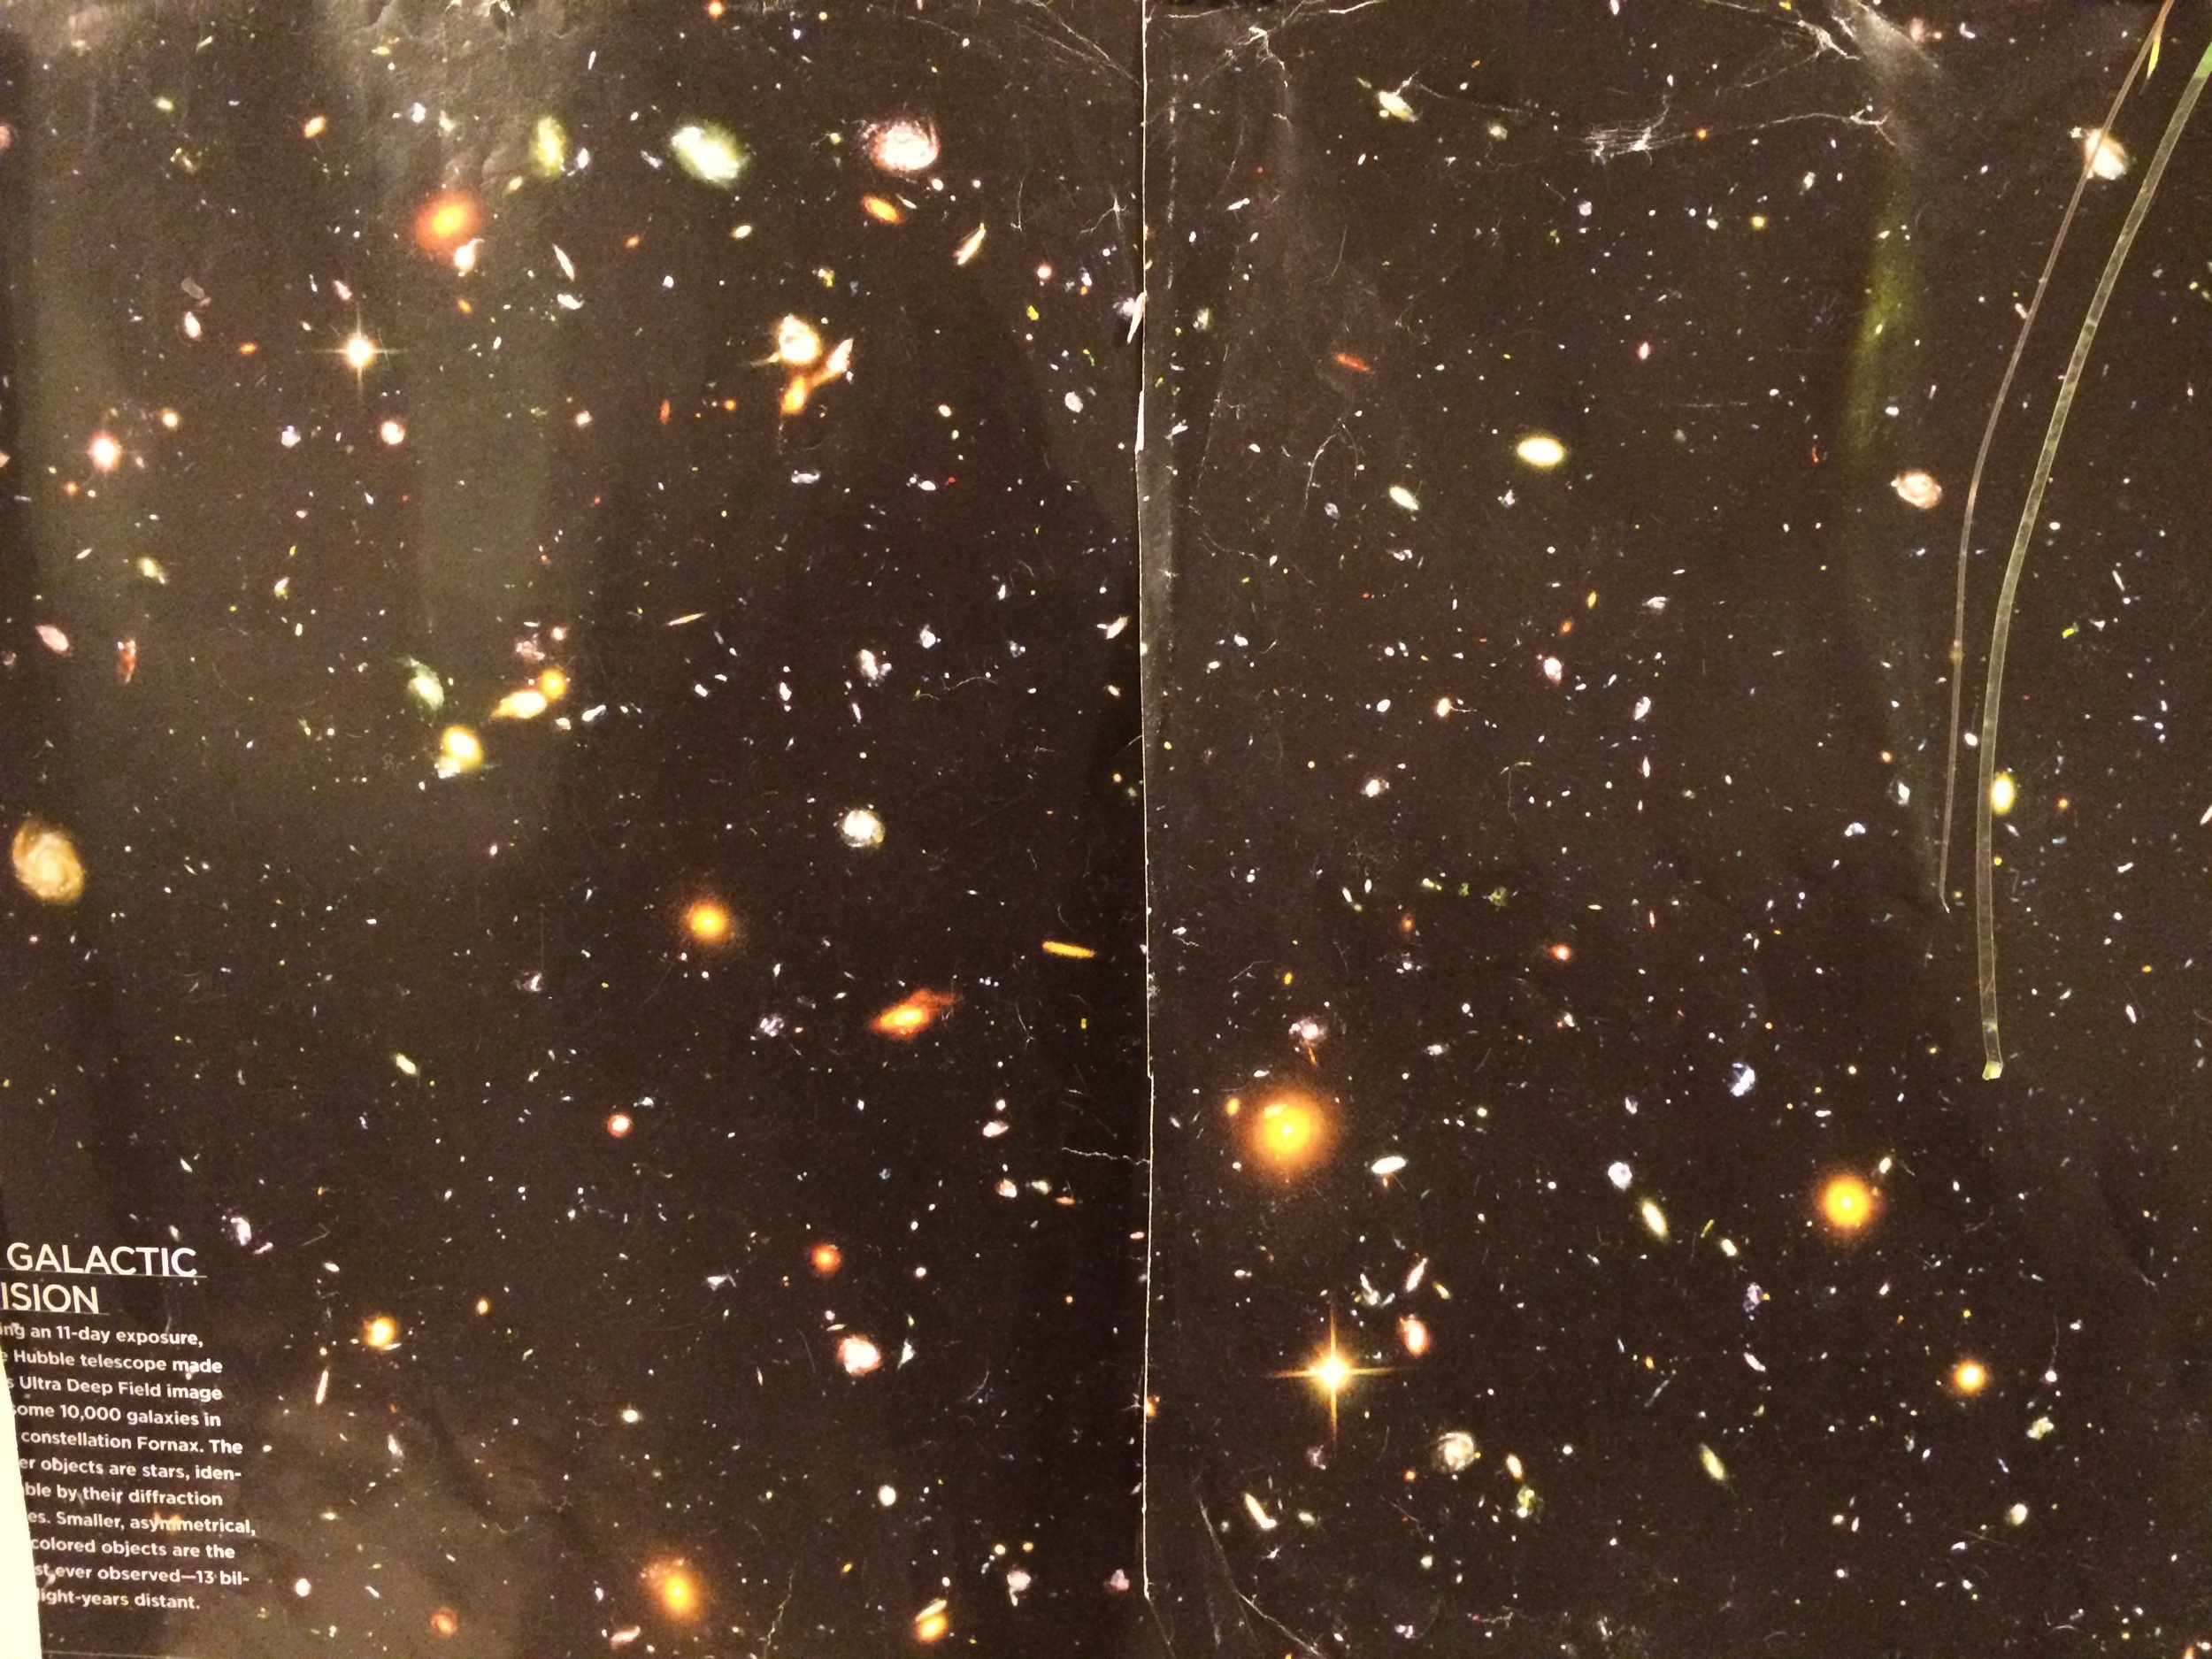 Hubble Ultra Deep Field Image. 10,000 plus galaxies in one tiny point in the sky.